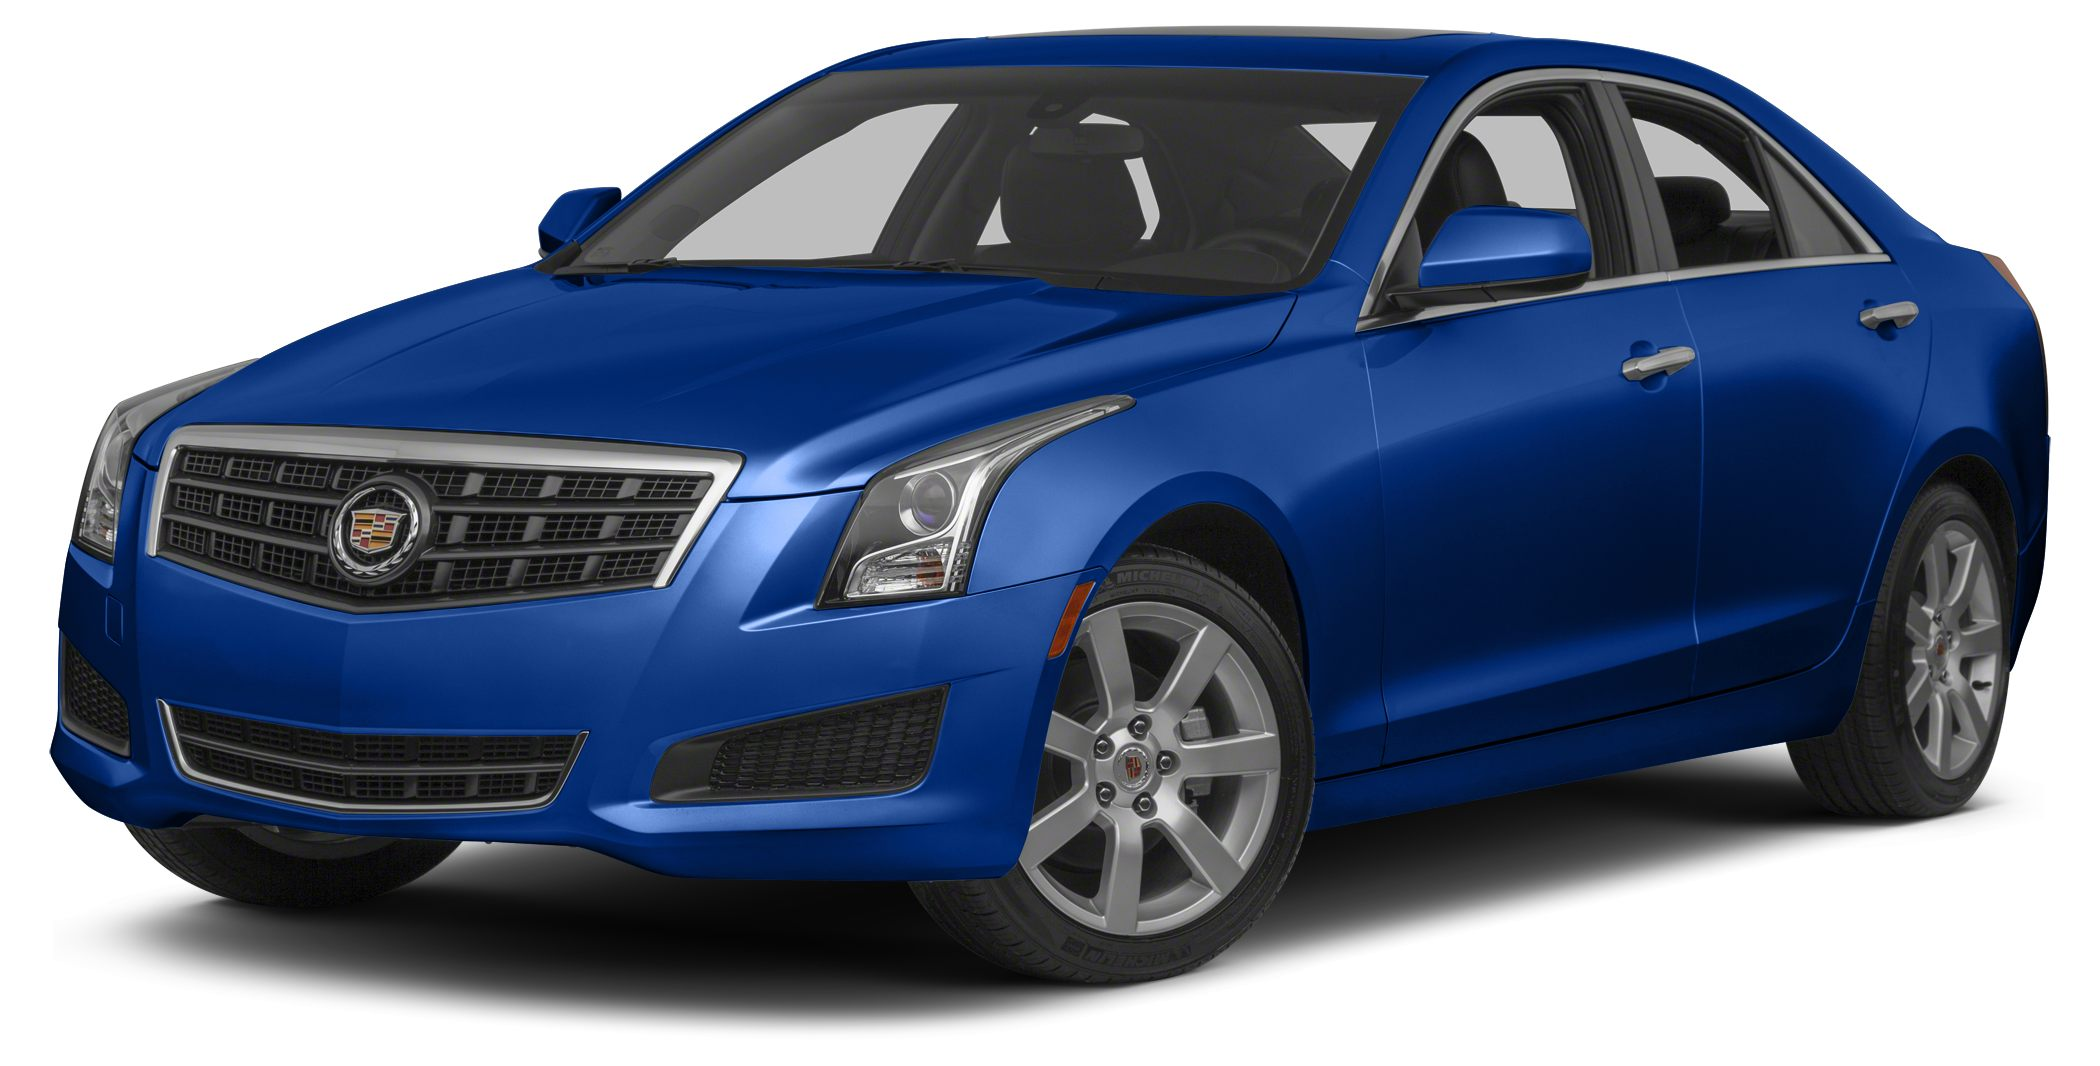 2013 Cadillac ATS 25 Luxury Power Sunroof Your lucky day Dont bother looking at any other car